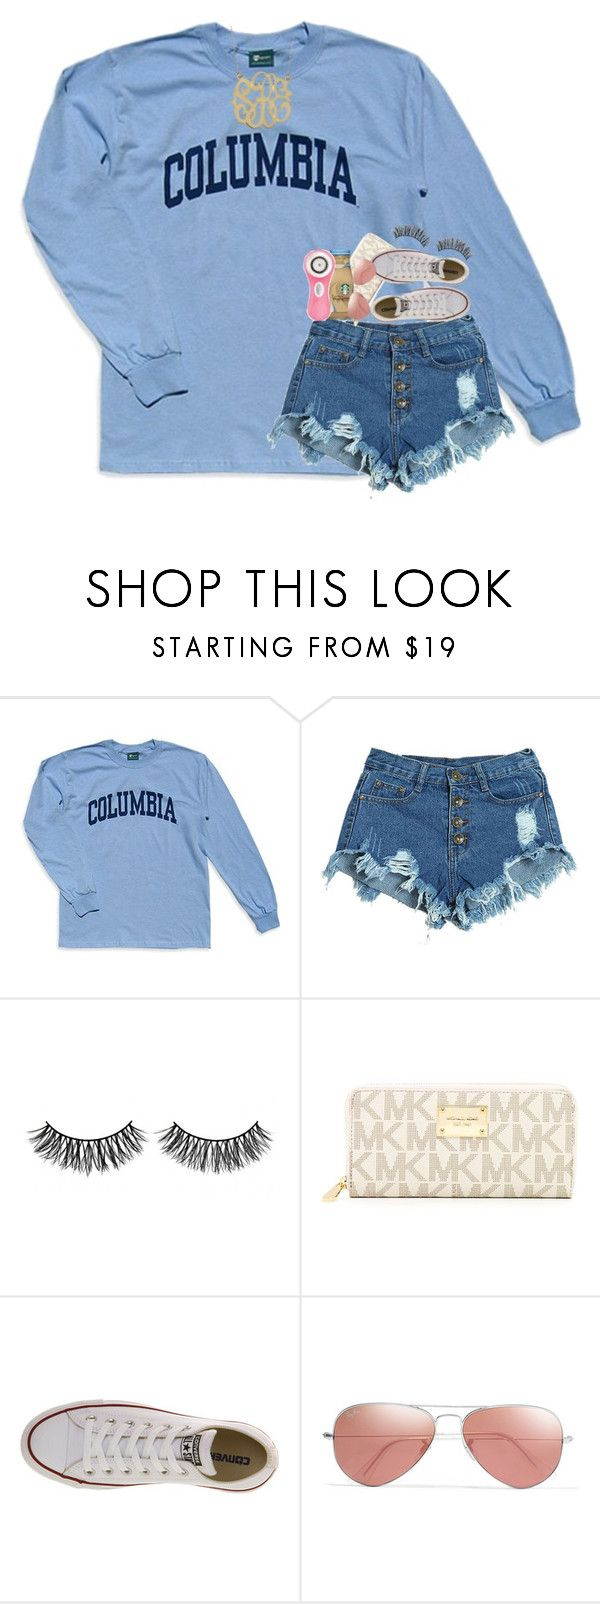 """""""update❣"""" by ellaswiftie13 ❤ liked on Polyvore featuring Columbia, WithChic, Rimini, MICHAEL Michael Kors, Converse, Ray-Ban and Clarisonic"""